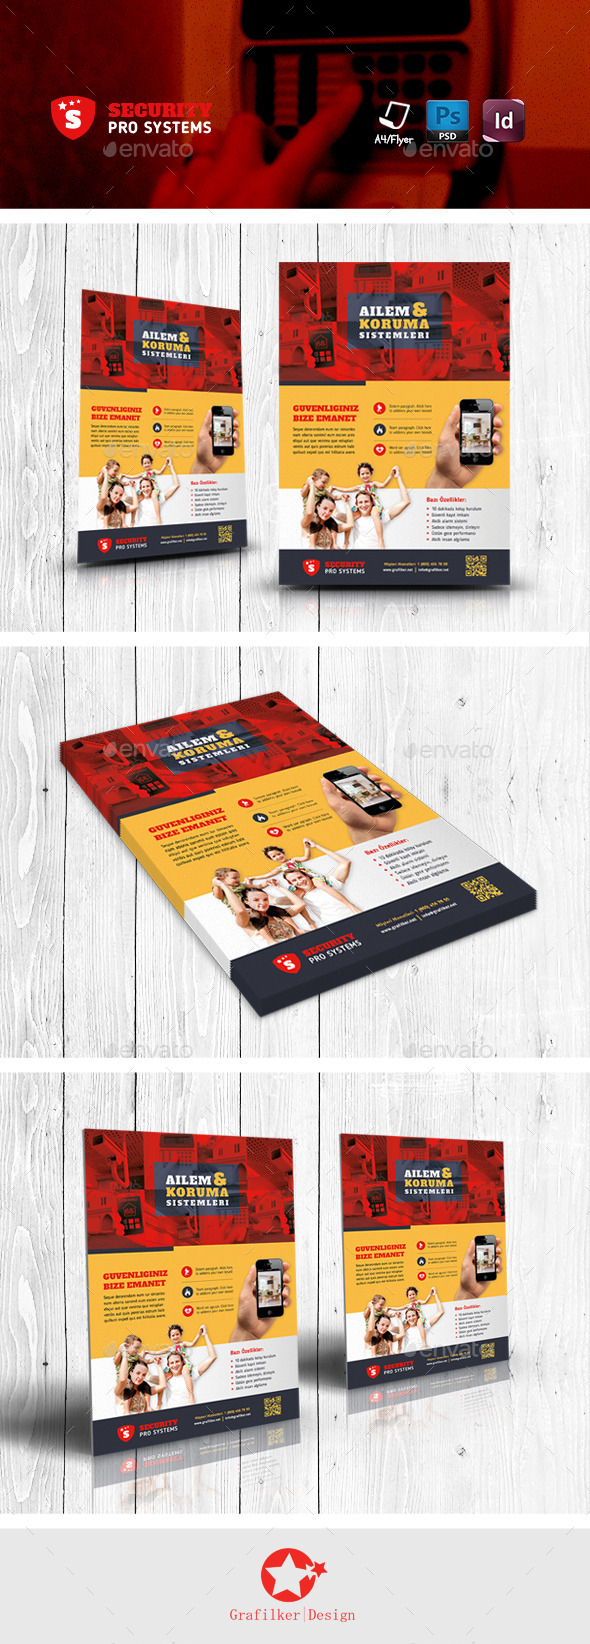 GraphicRiver Security Systems Flyer Templates 11623435